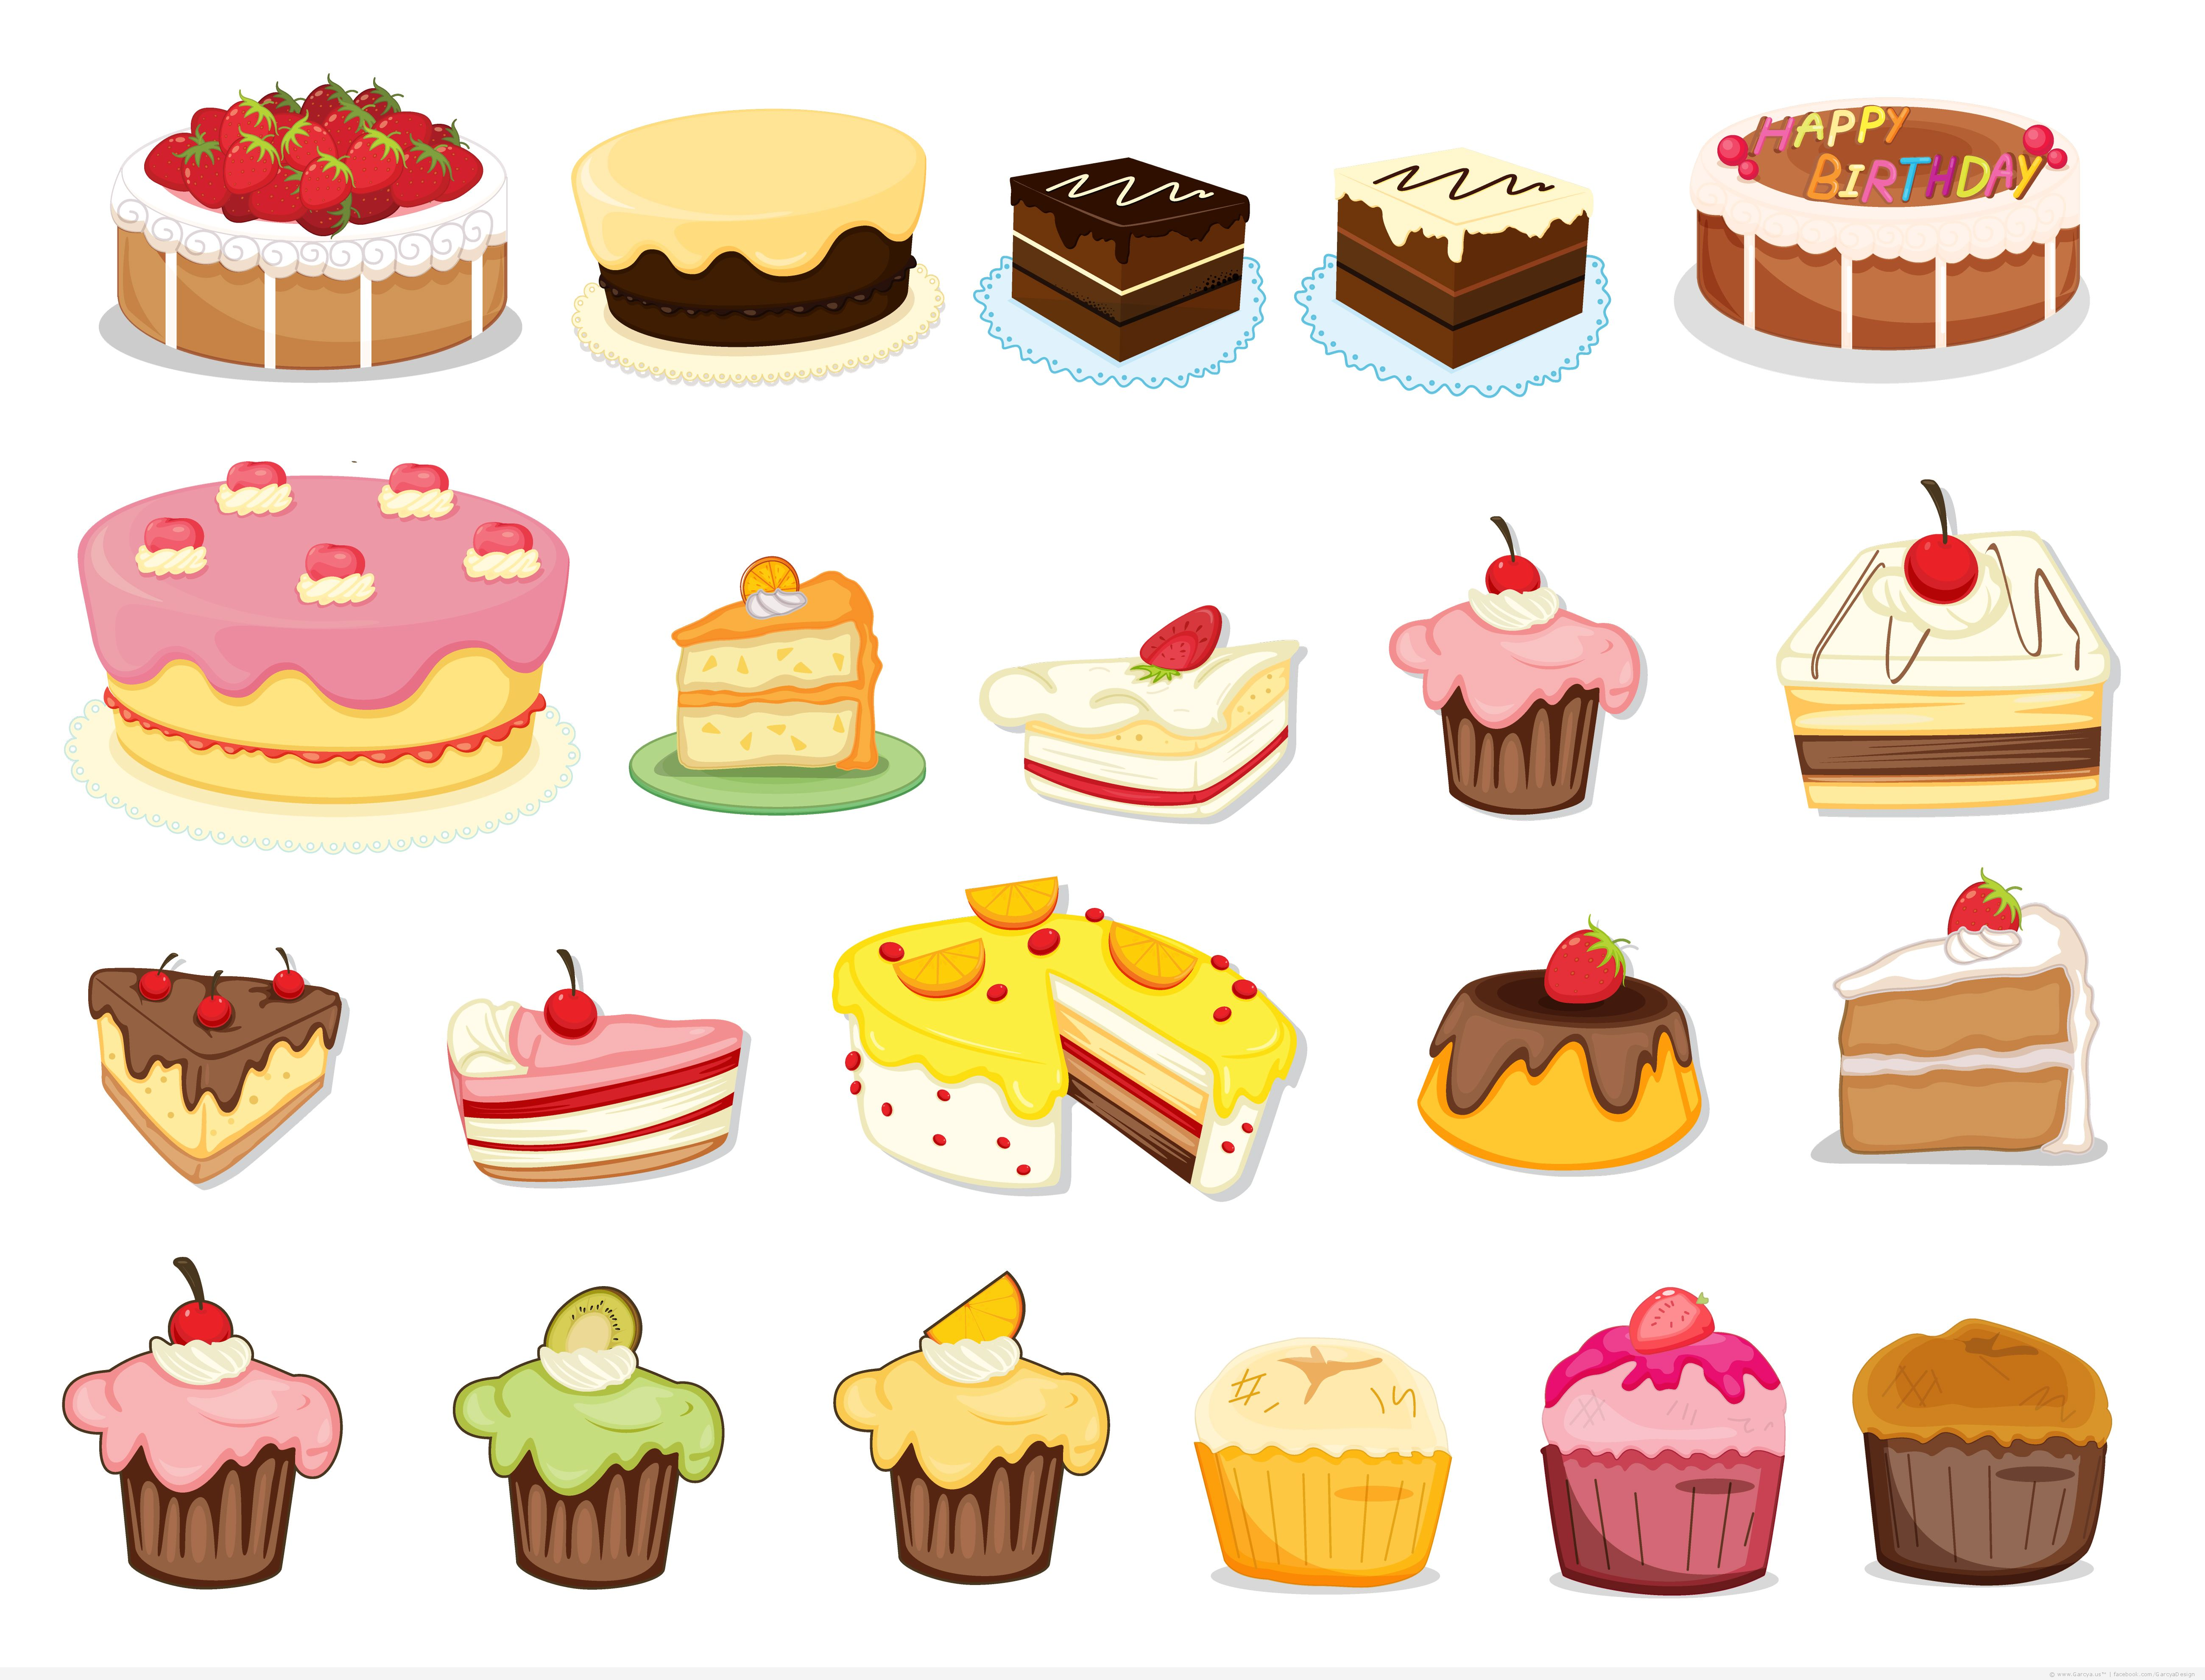 19 Cake Vector Free Images